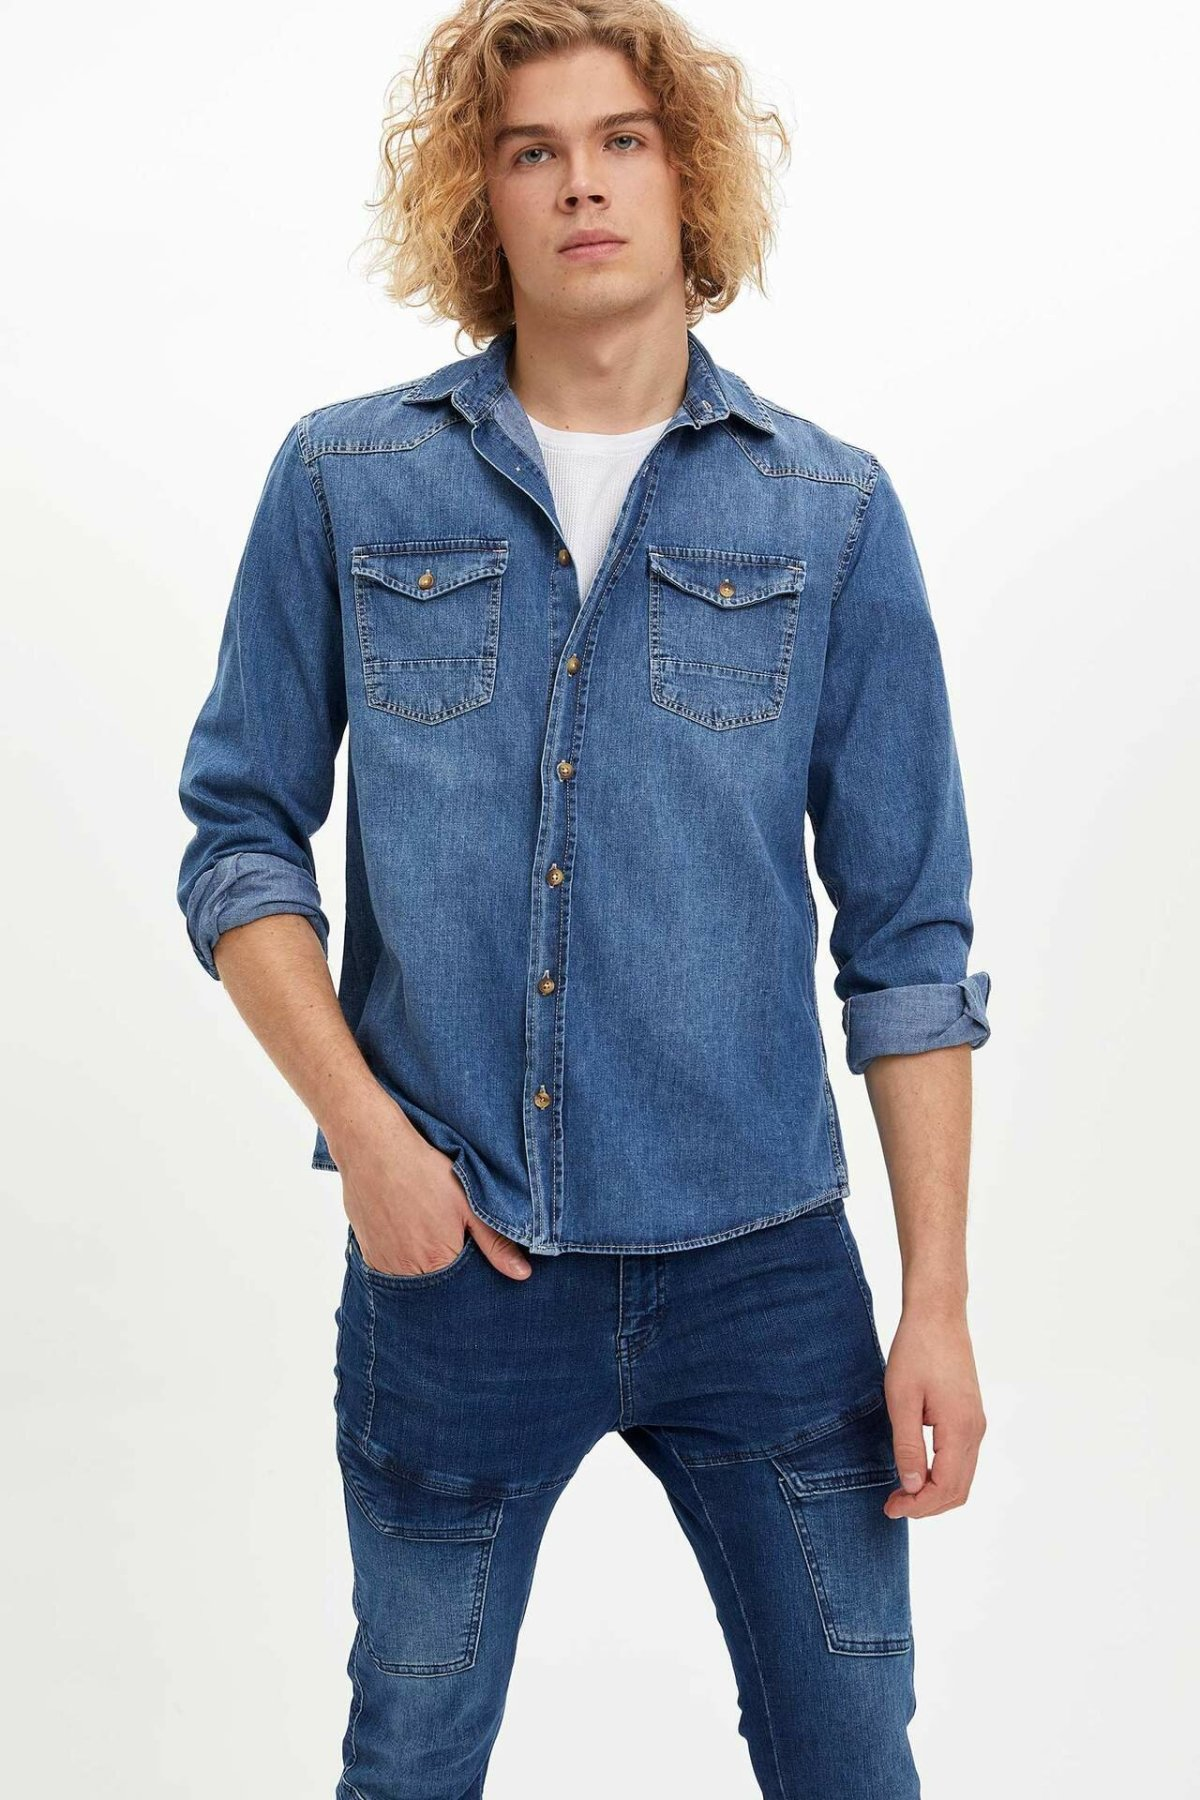 DeFacto Man Long Sleeve Denim Shirt Male Turn-down Collar Pockets Denim Tops Casual Shirts For Autumn Spring-M0600AZ19AU